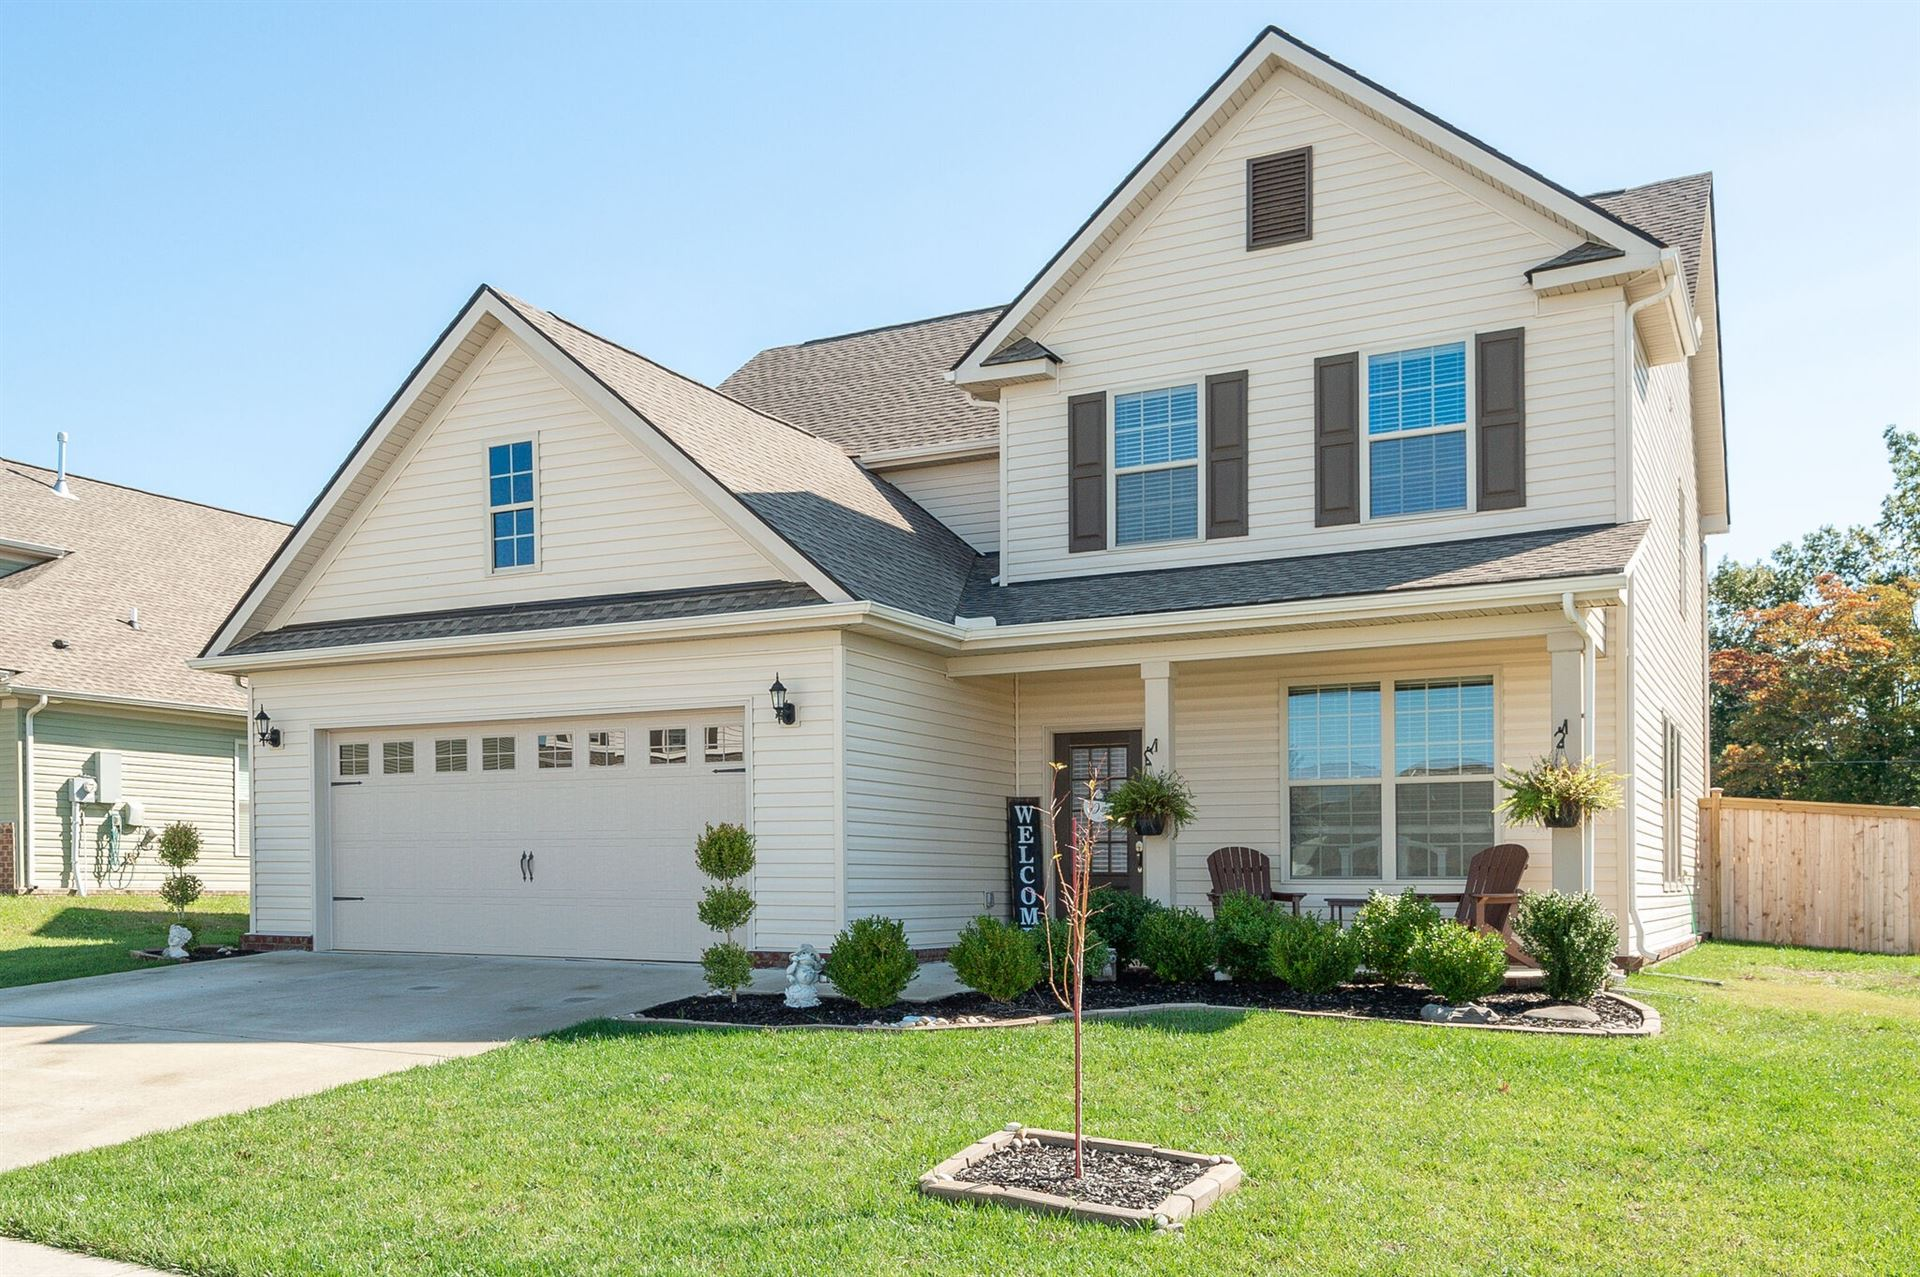 Photo of 1010 Keeneland Dr, Spring Hill, TN 37174 (MLS # 2200001)